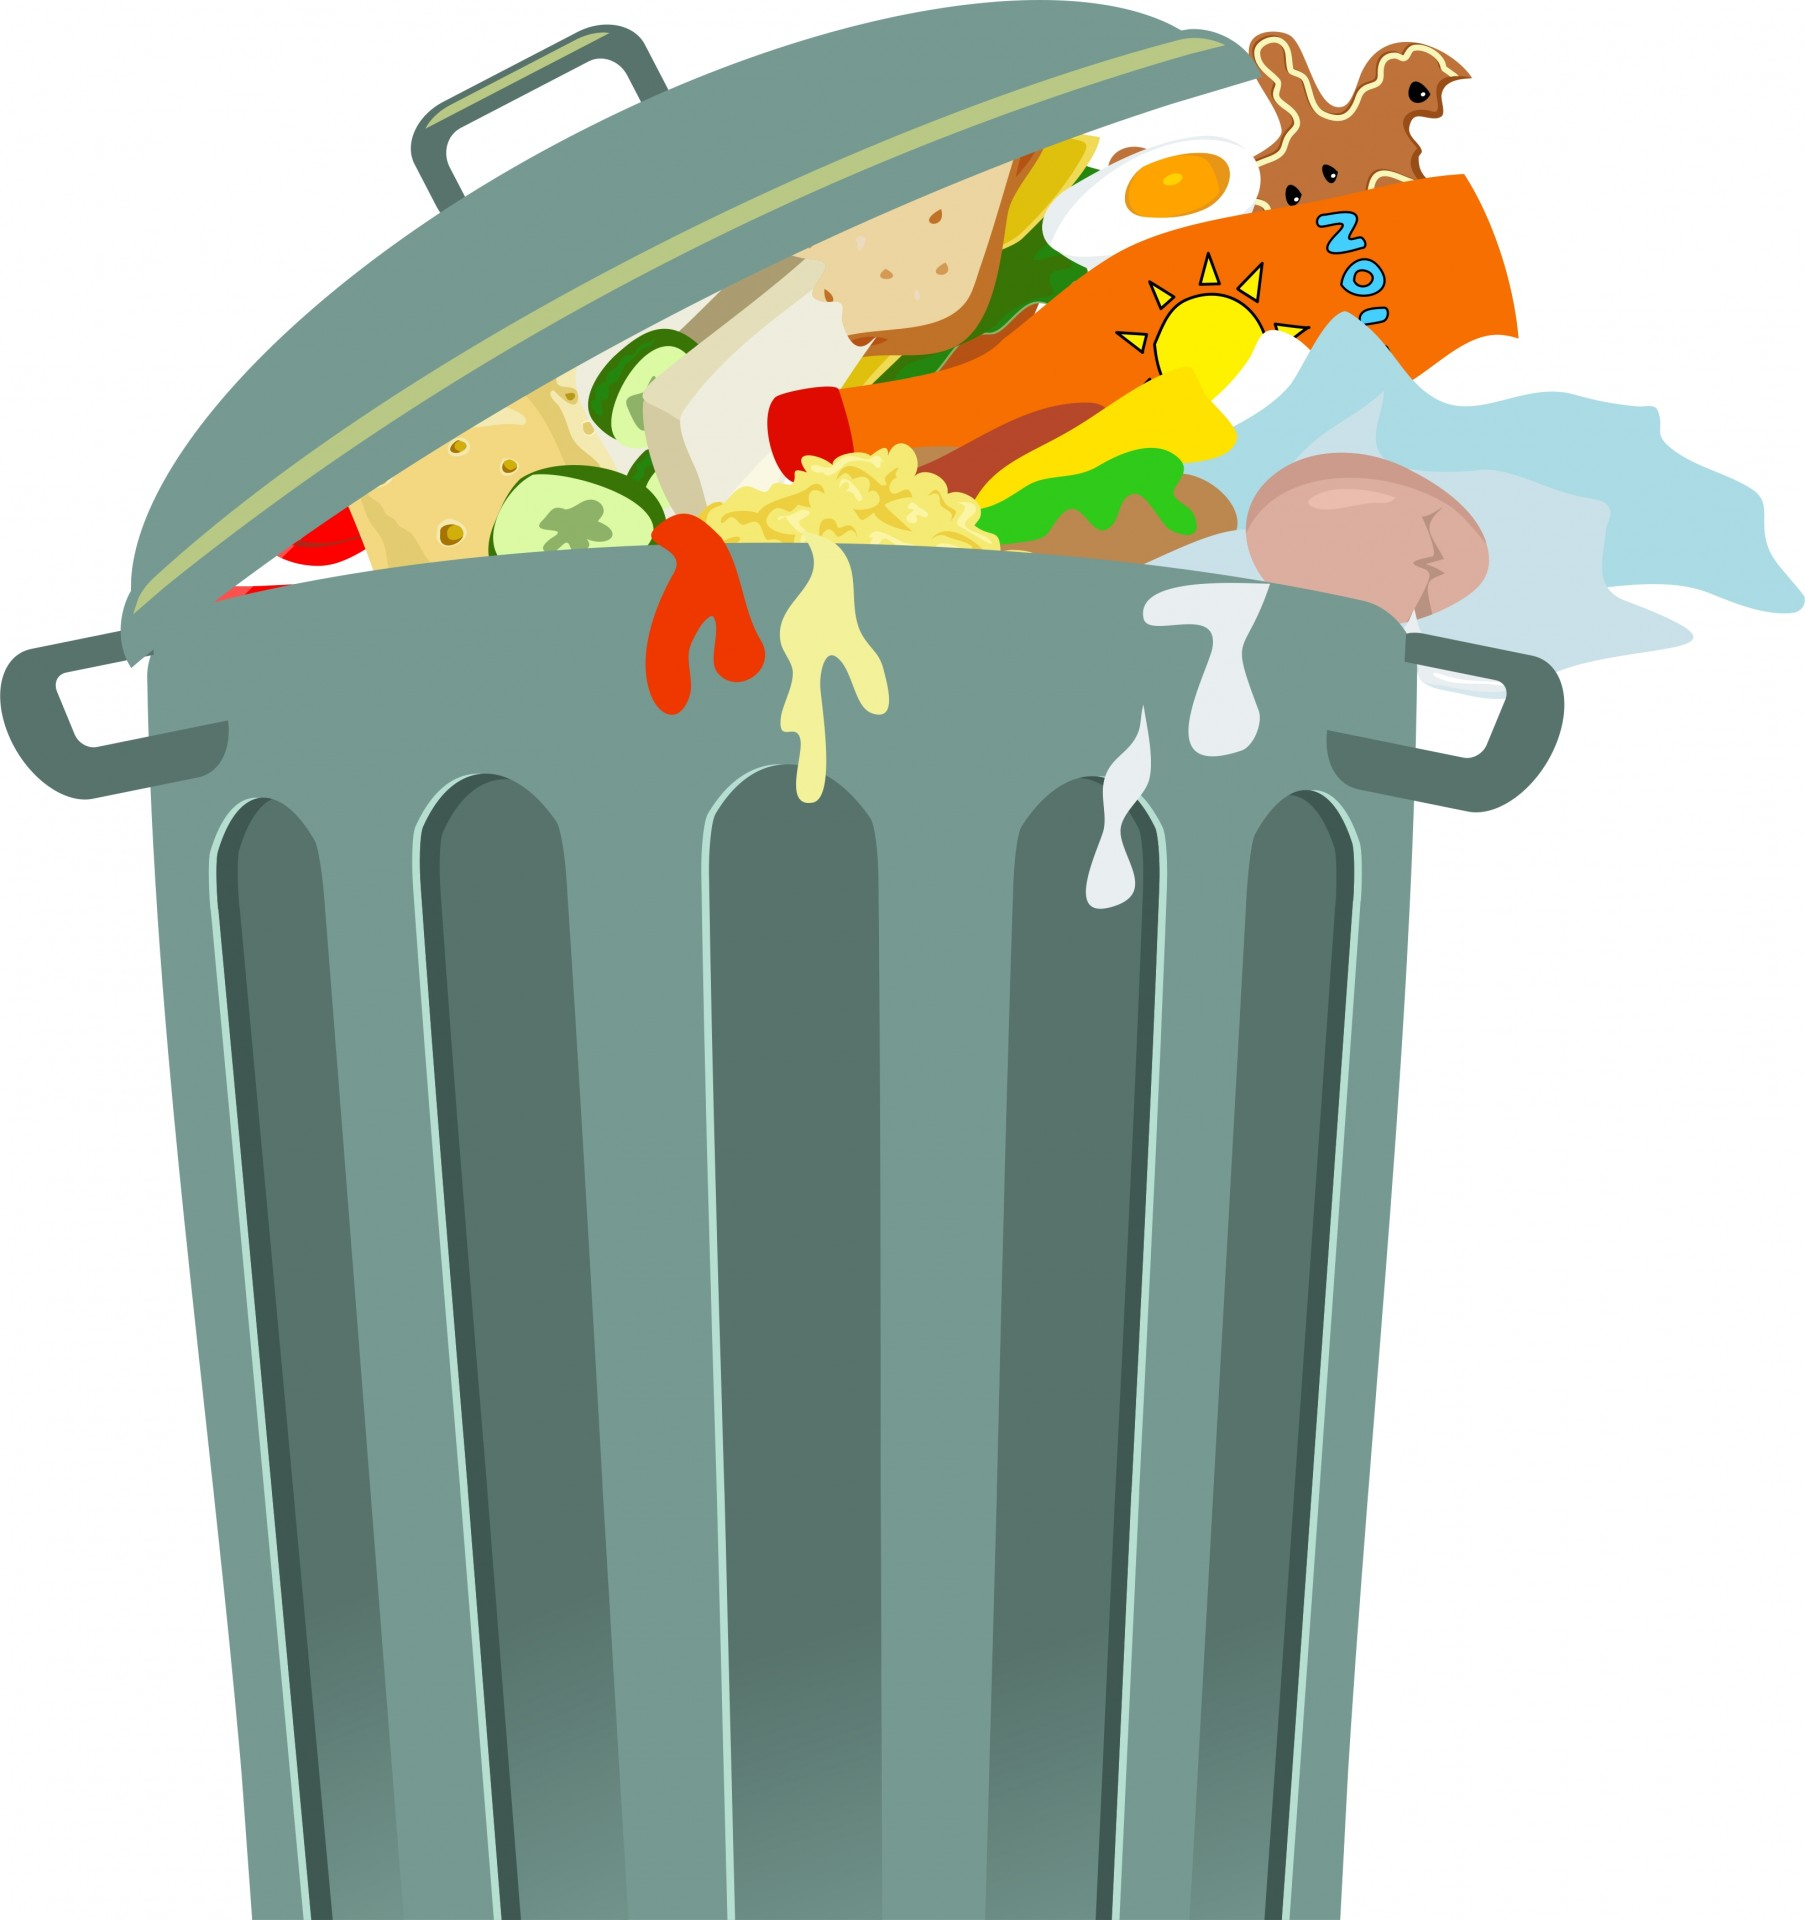 Trash Can Clip Art-Trash Can Clip Art-13